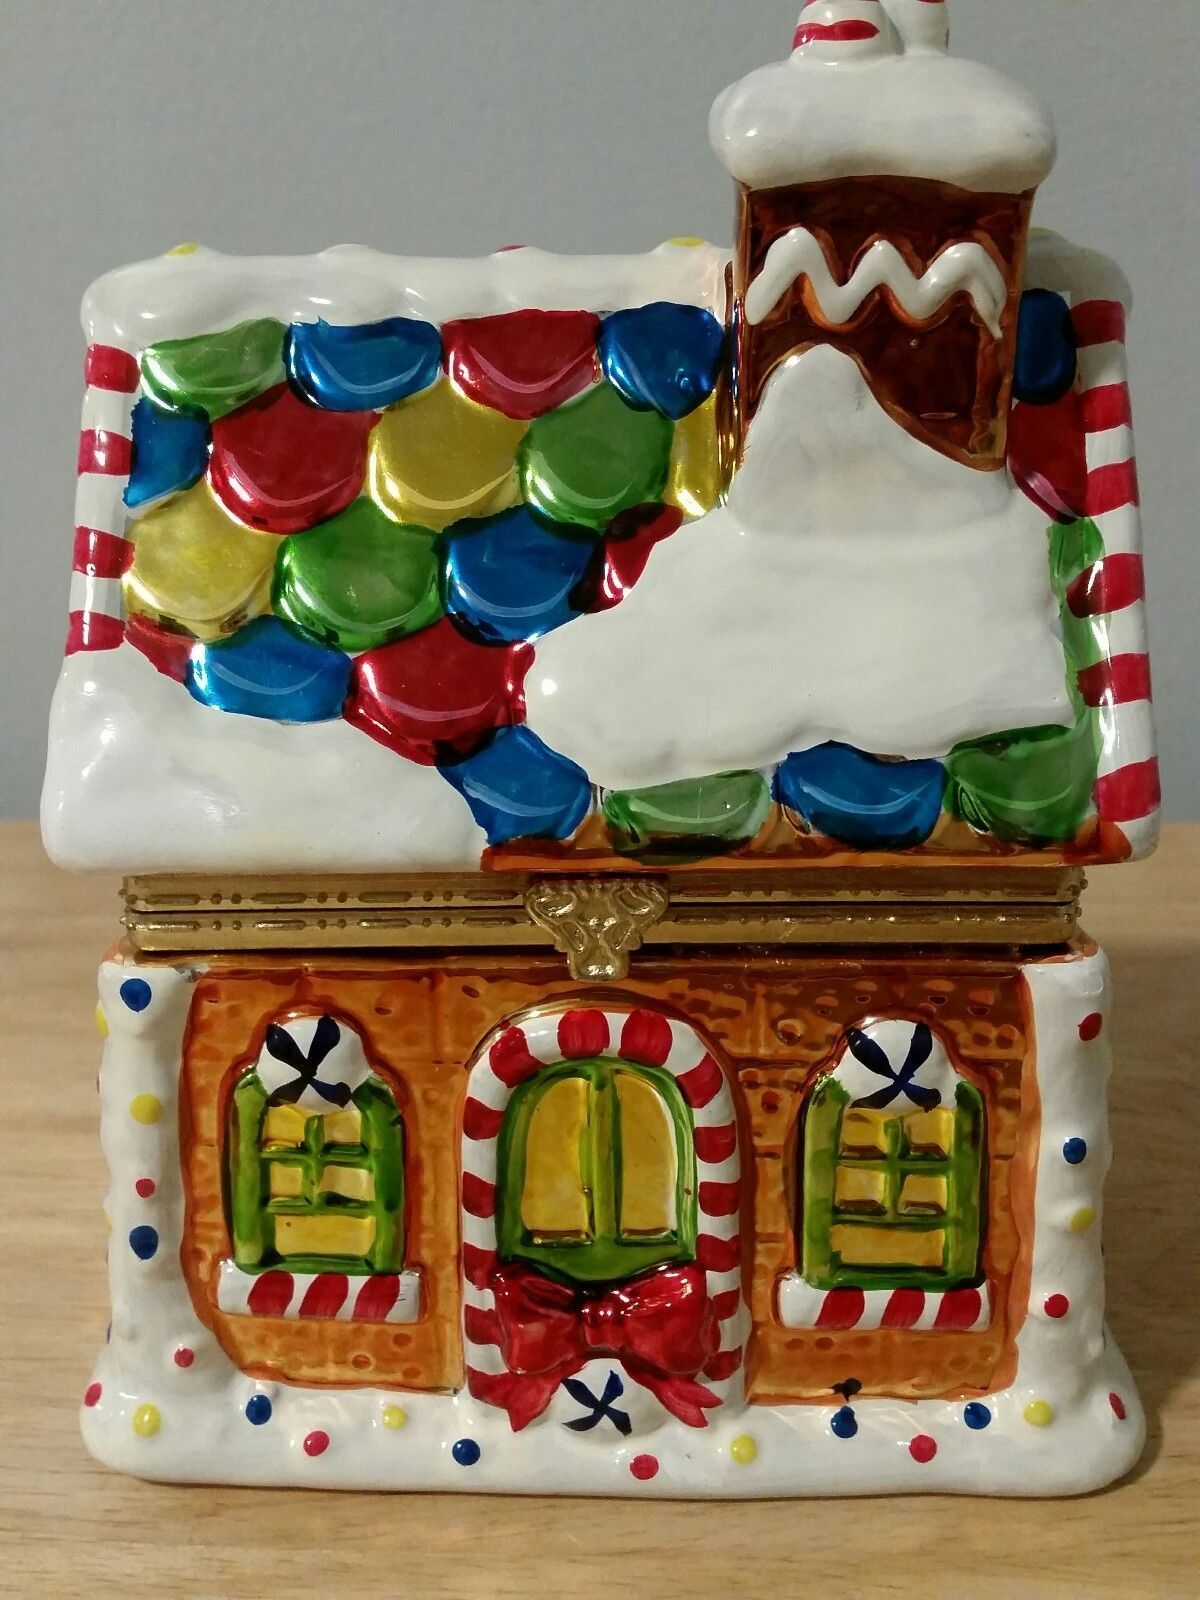 Sensational Large Animated Musical Gingerbread House And 50 Similar Items Download Free Architecture Designs Rallybritishbridgeorg